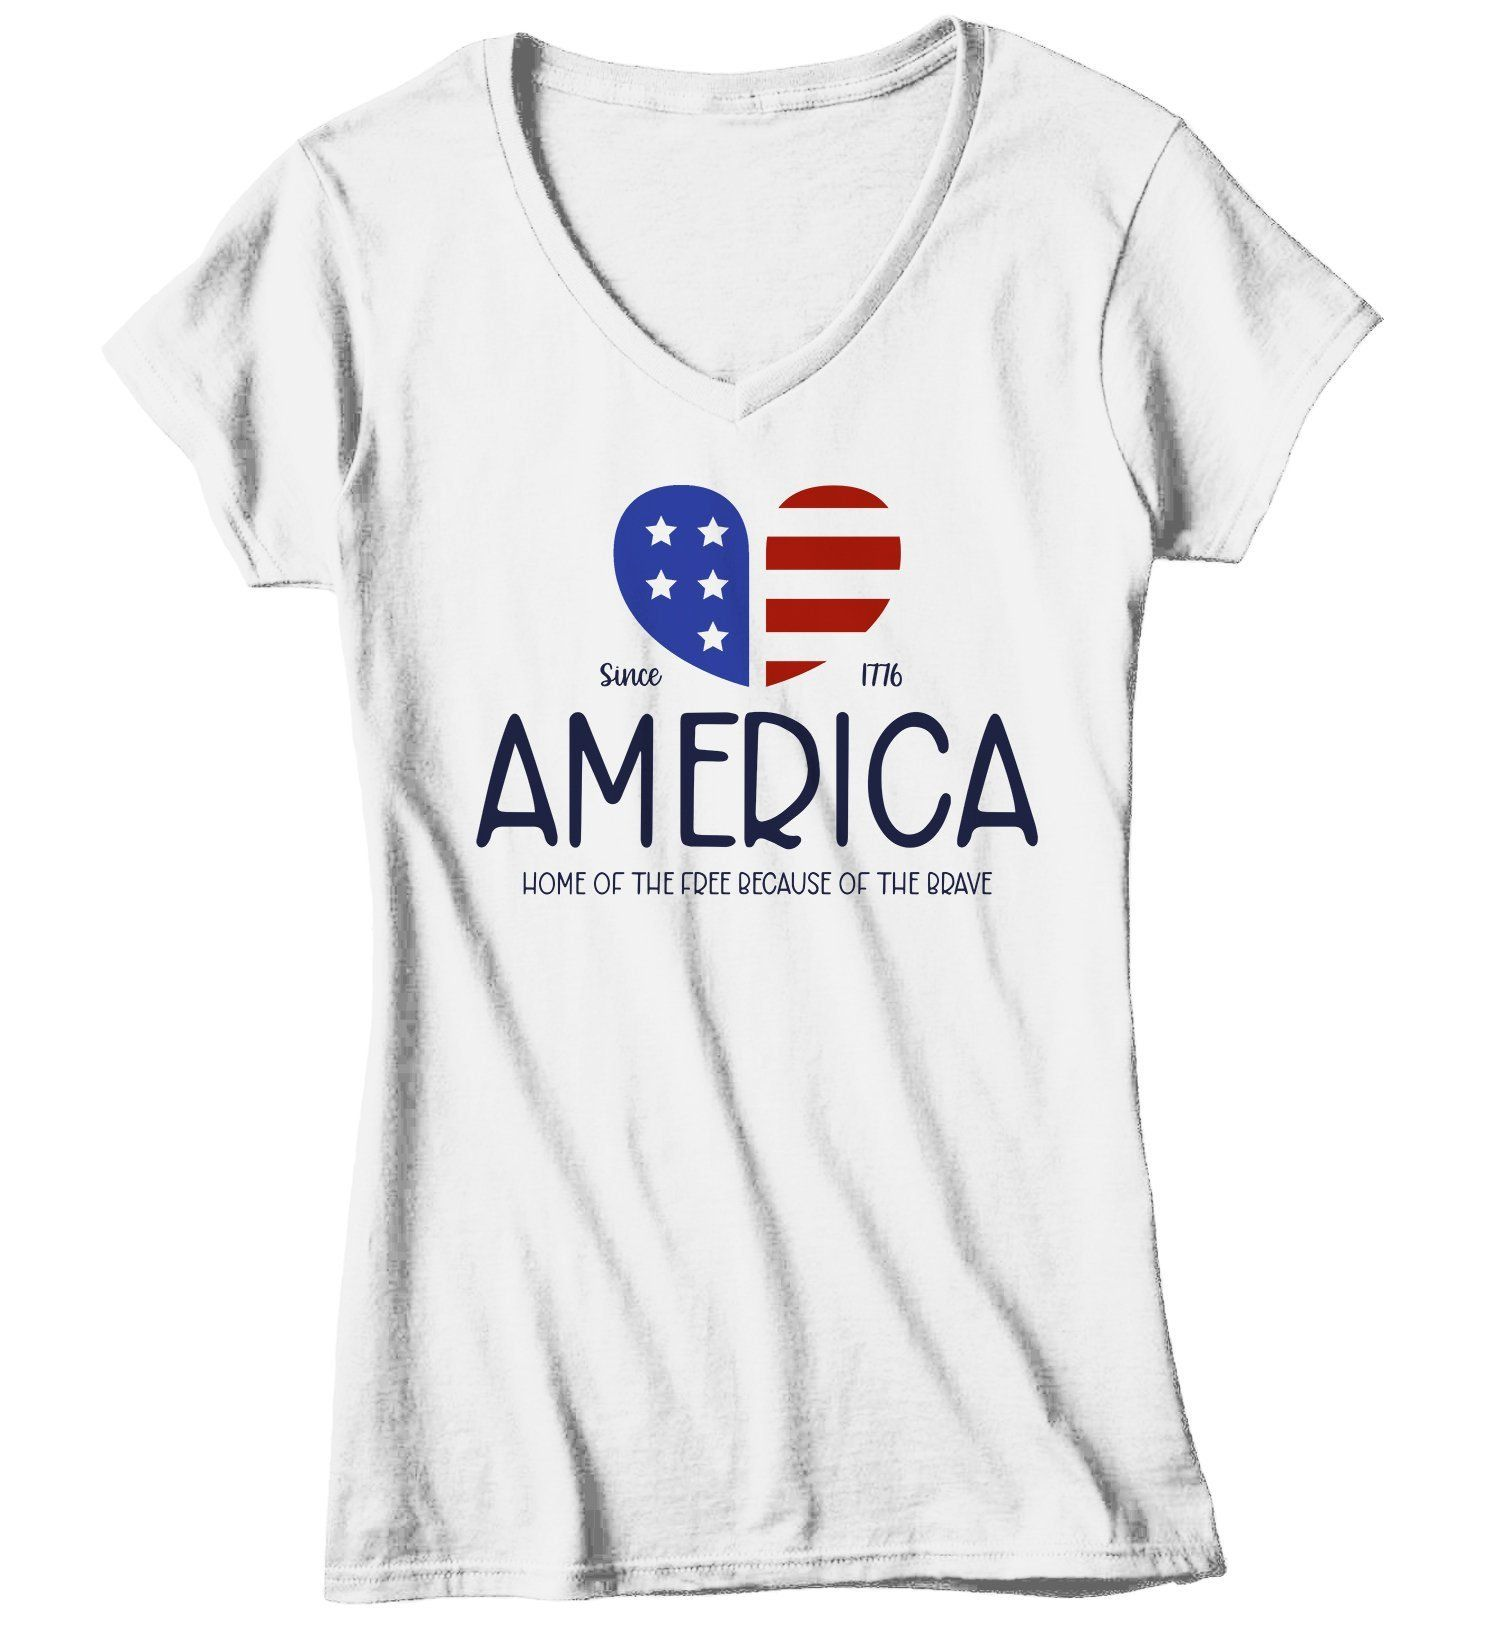 Women's Vintage America T-Shirt Heart Flag Patriotic Shirts 4th July T-Shirt Shirt Flag Home Of Free Because Of Brave Tee 1